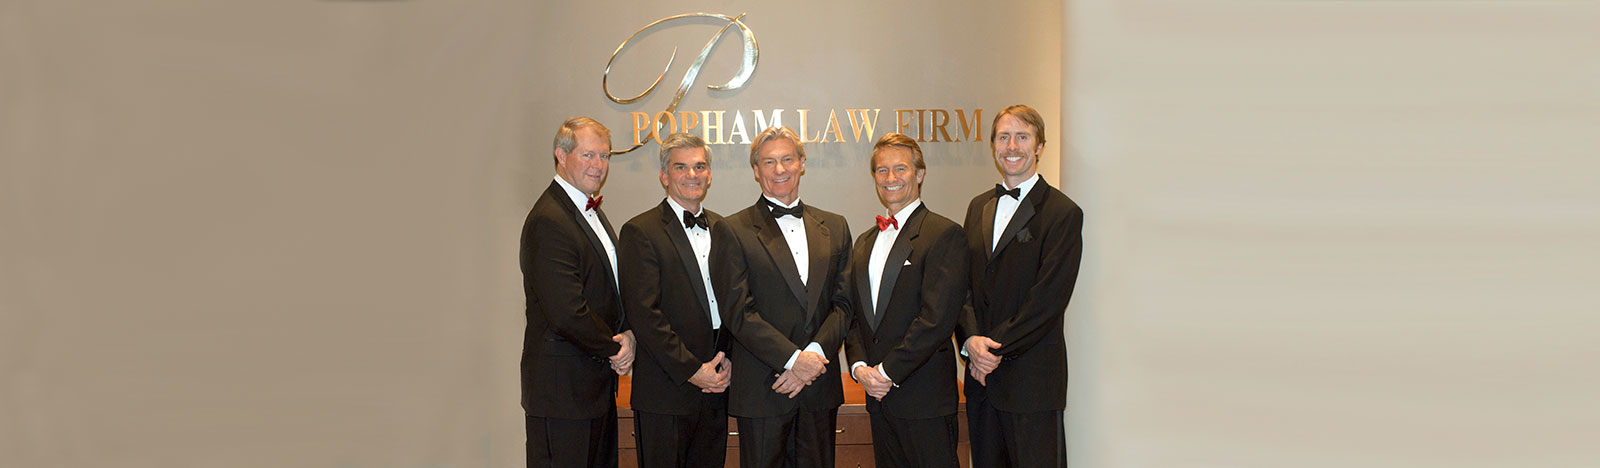 The Popham Law Firm image 0